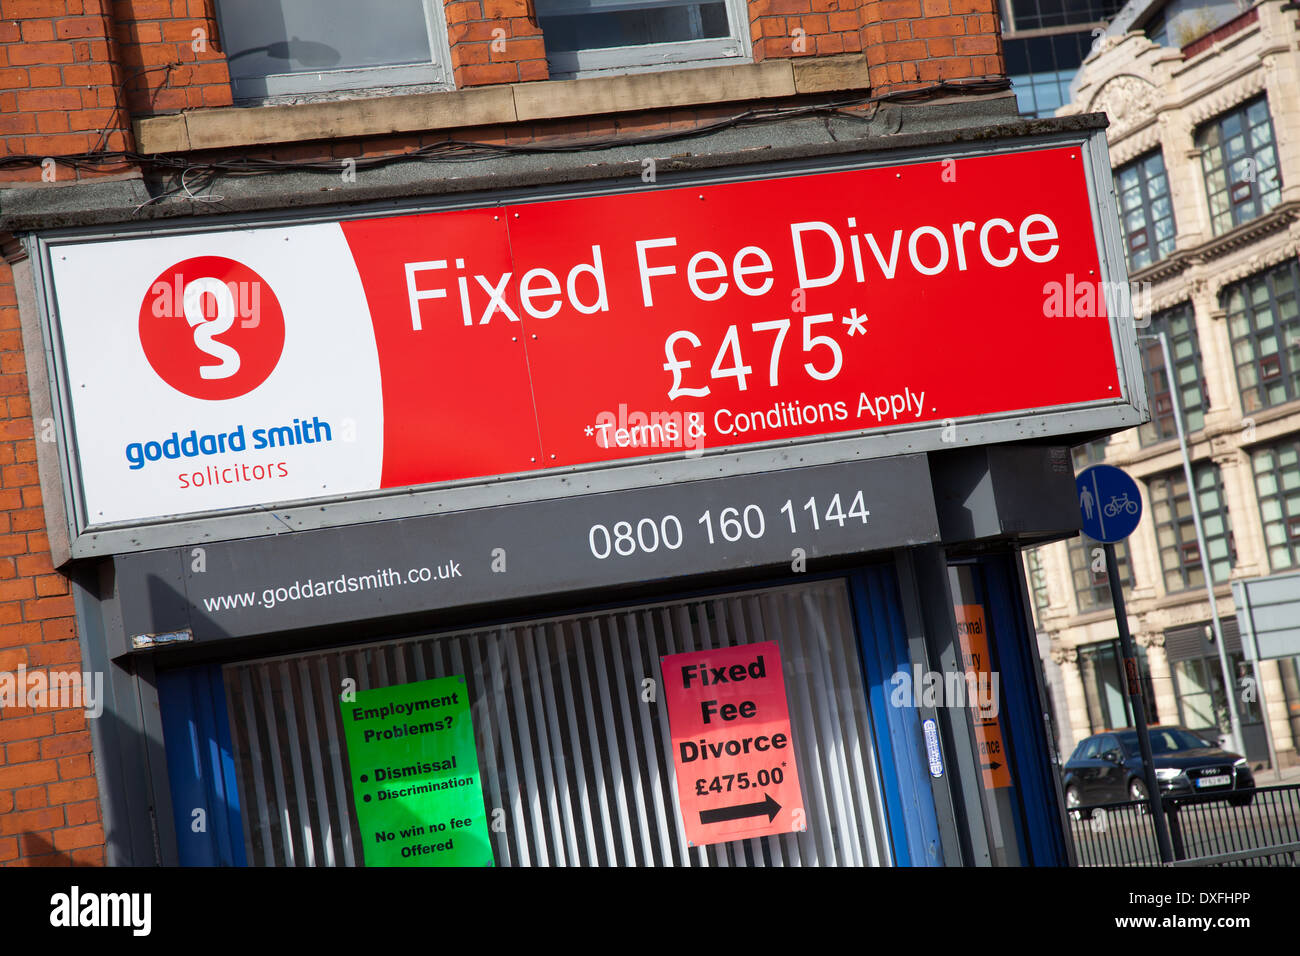 'Consciously uncouple' Solicitors in Ancoats, Manchester offering fixed fee Divorce £475 - Stock Image